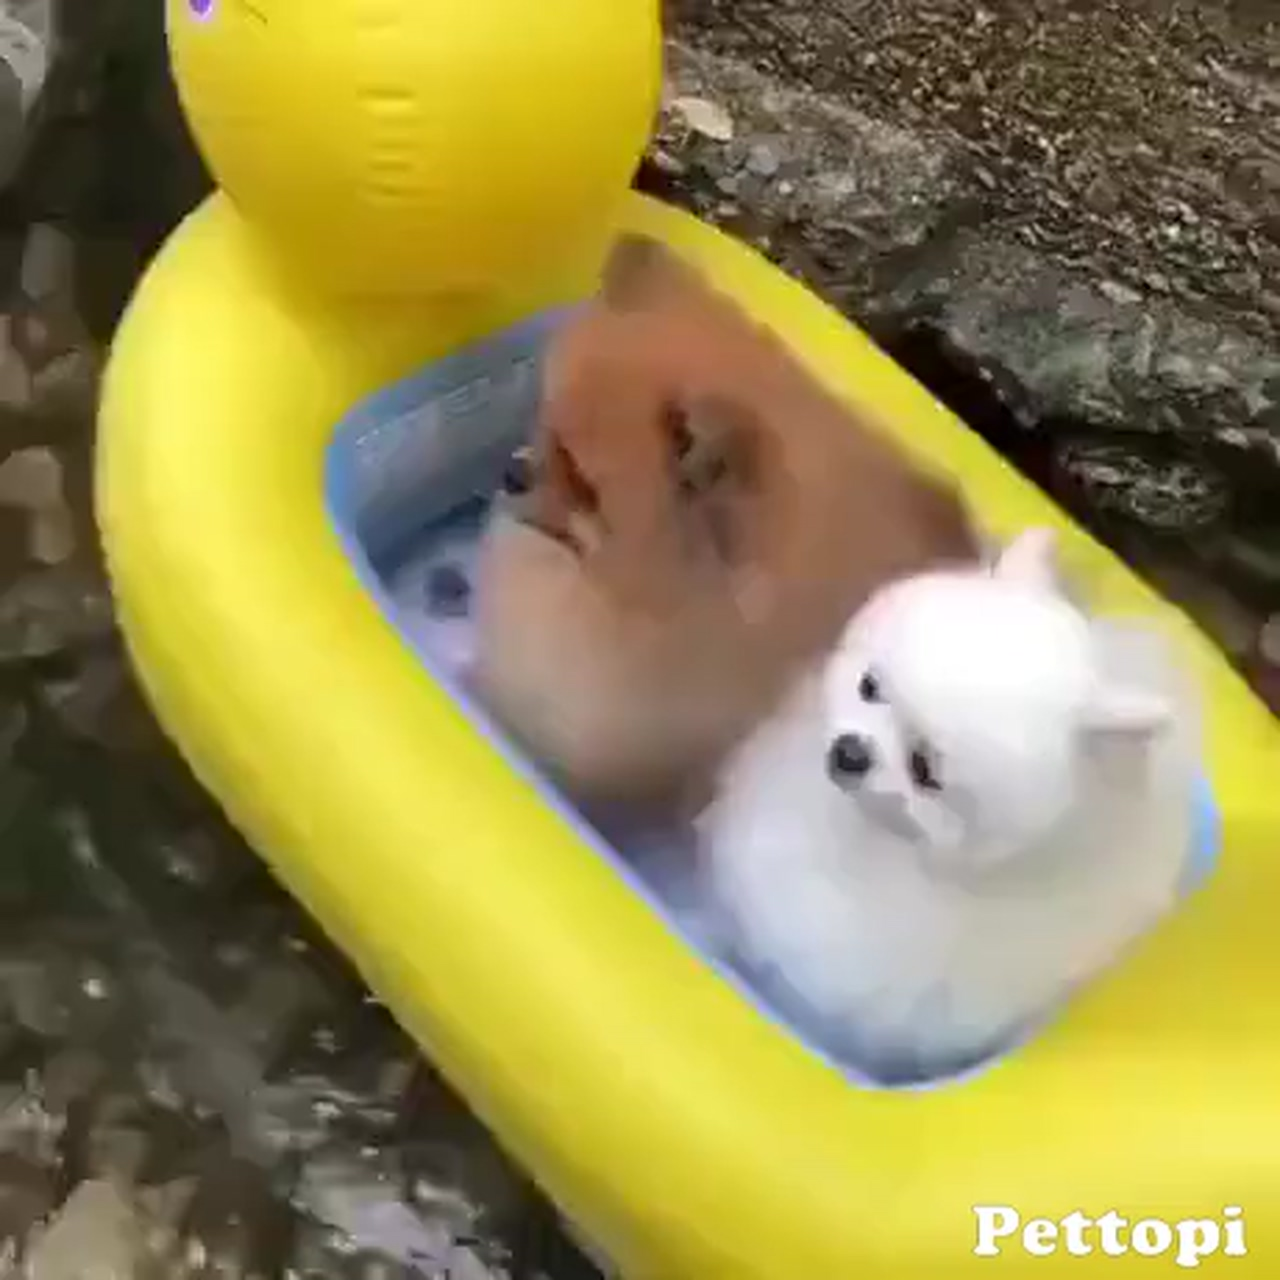 Two cute dogs on a duck's float